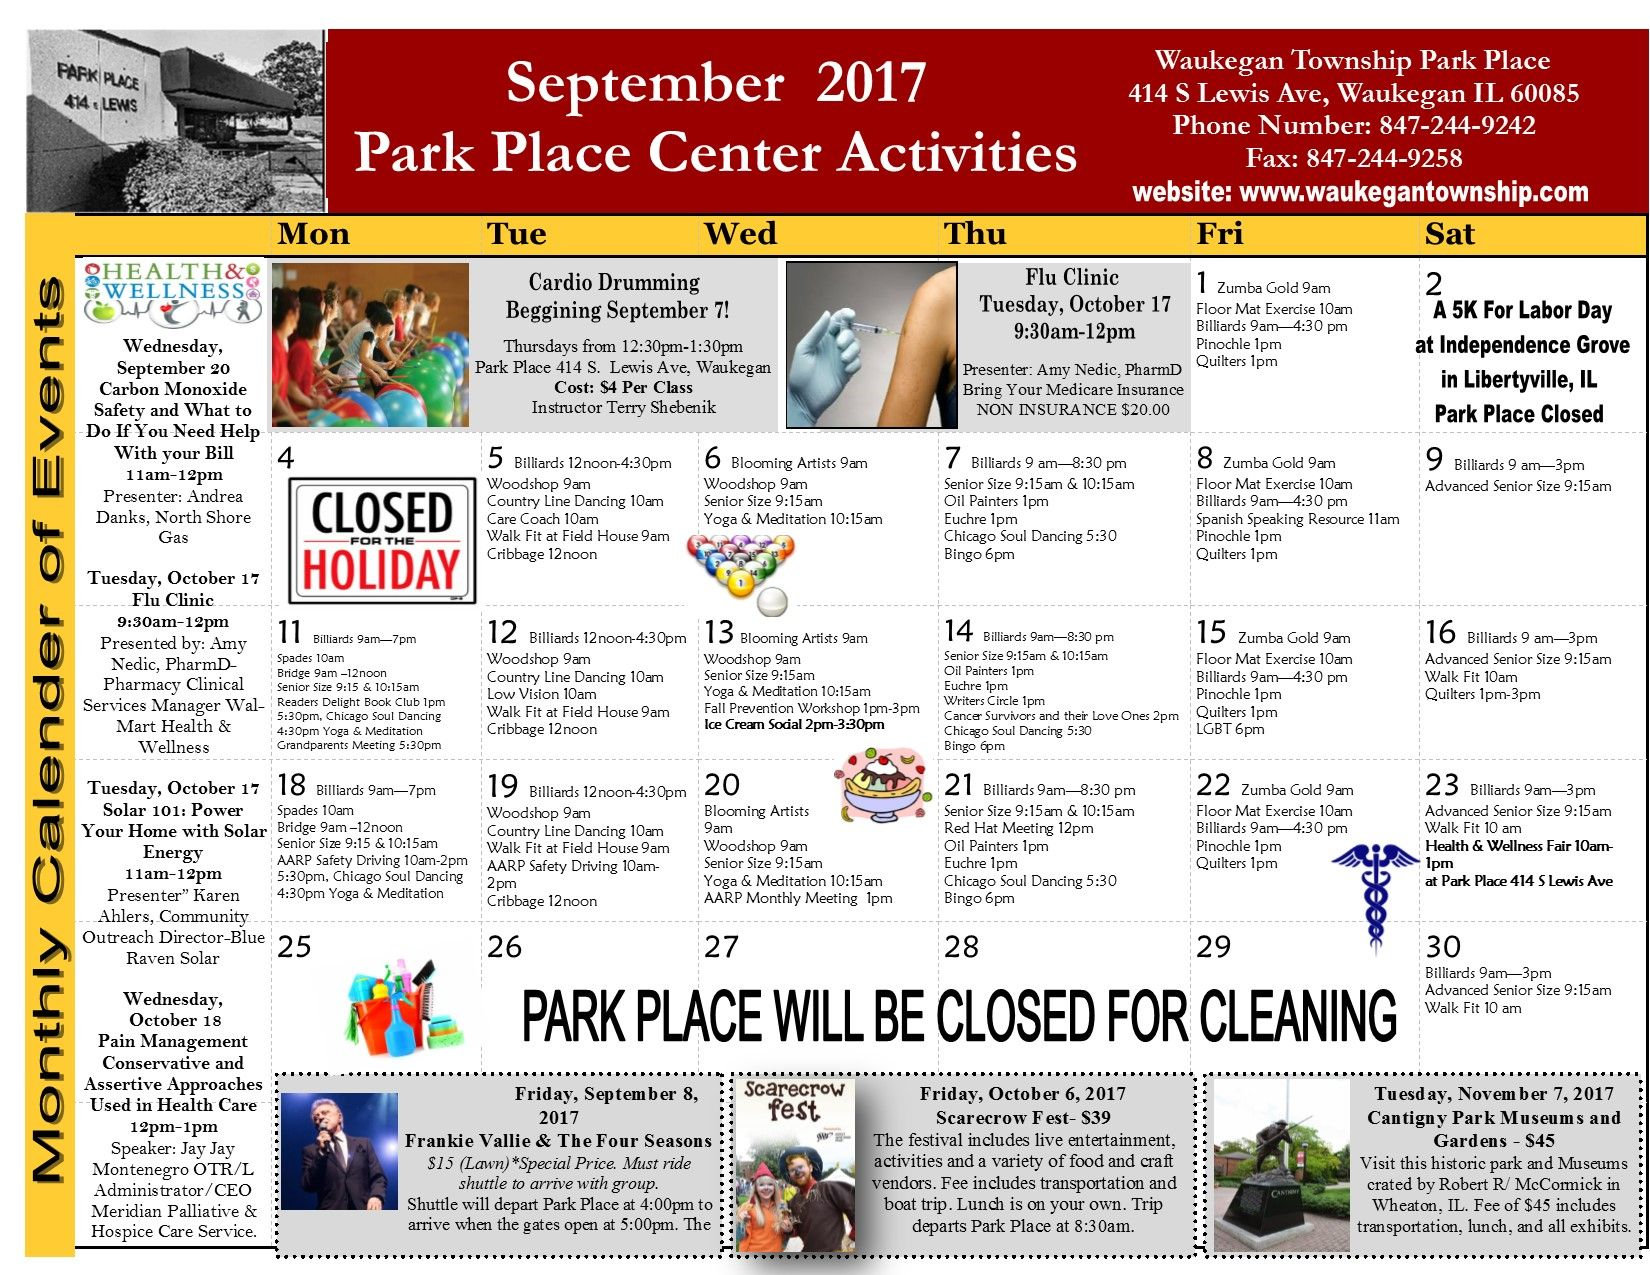 Pin by waukegan township on 2017 park place calendars